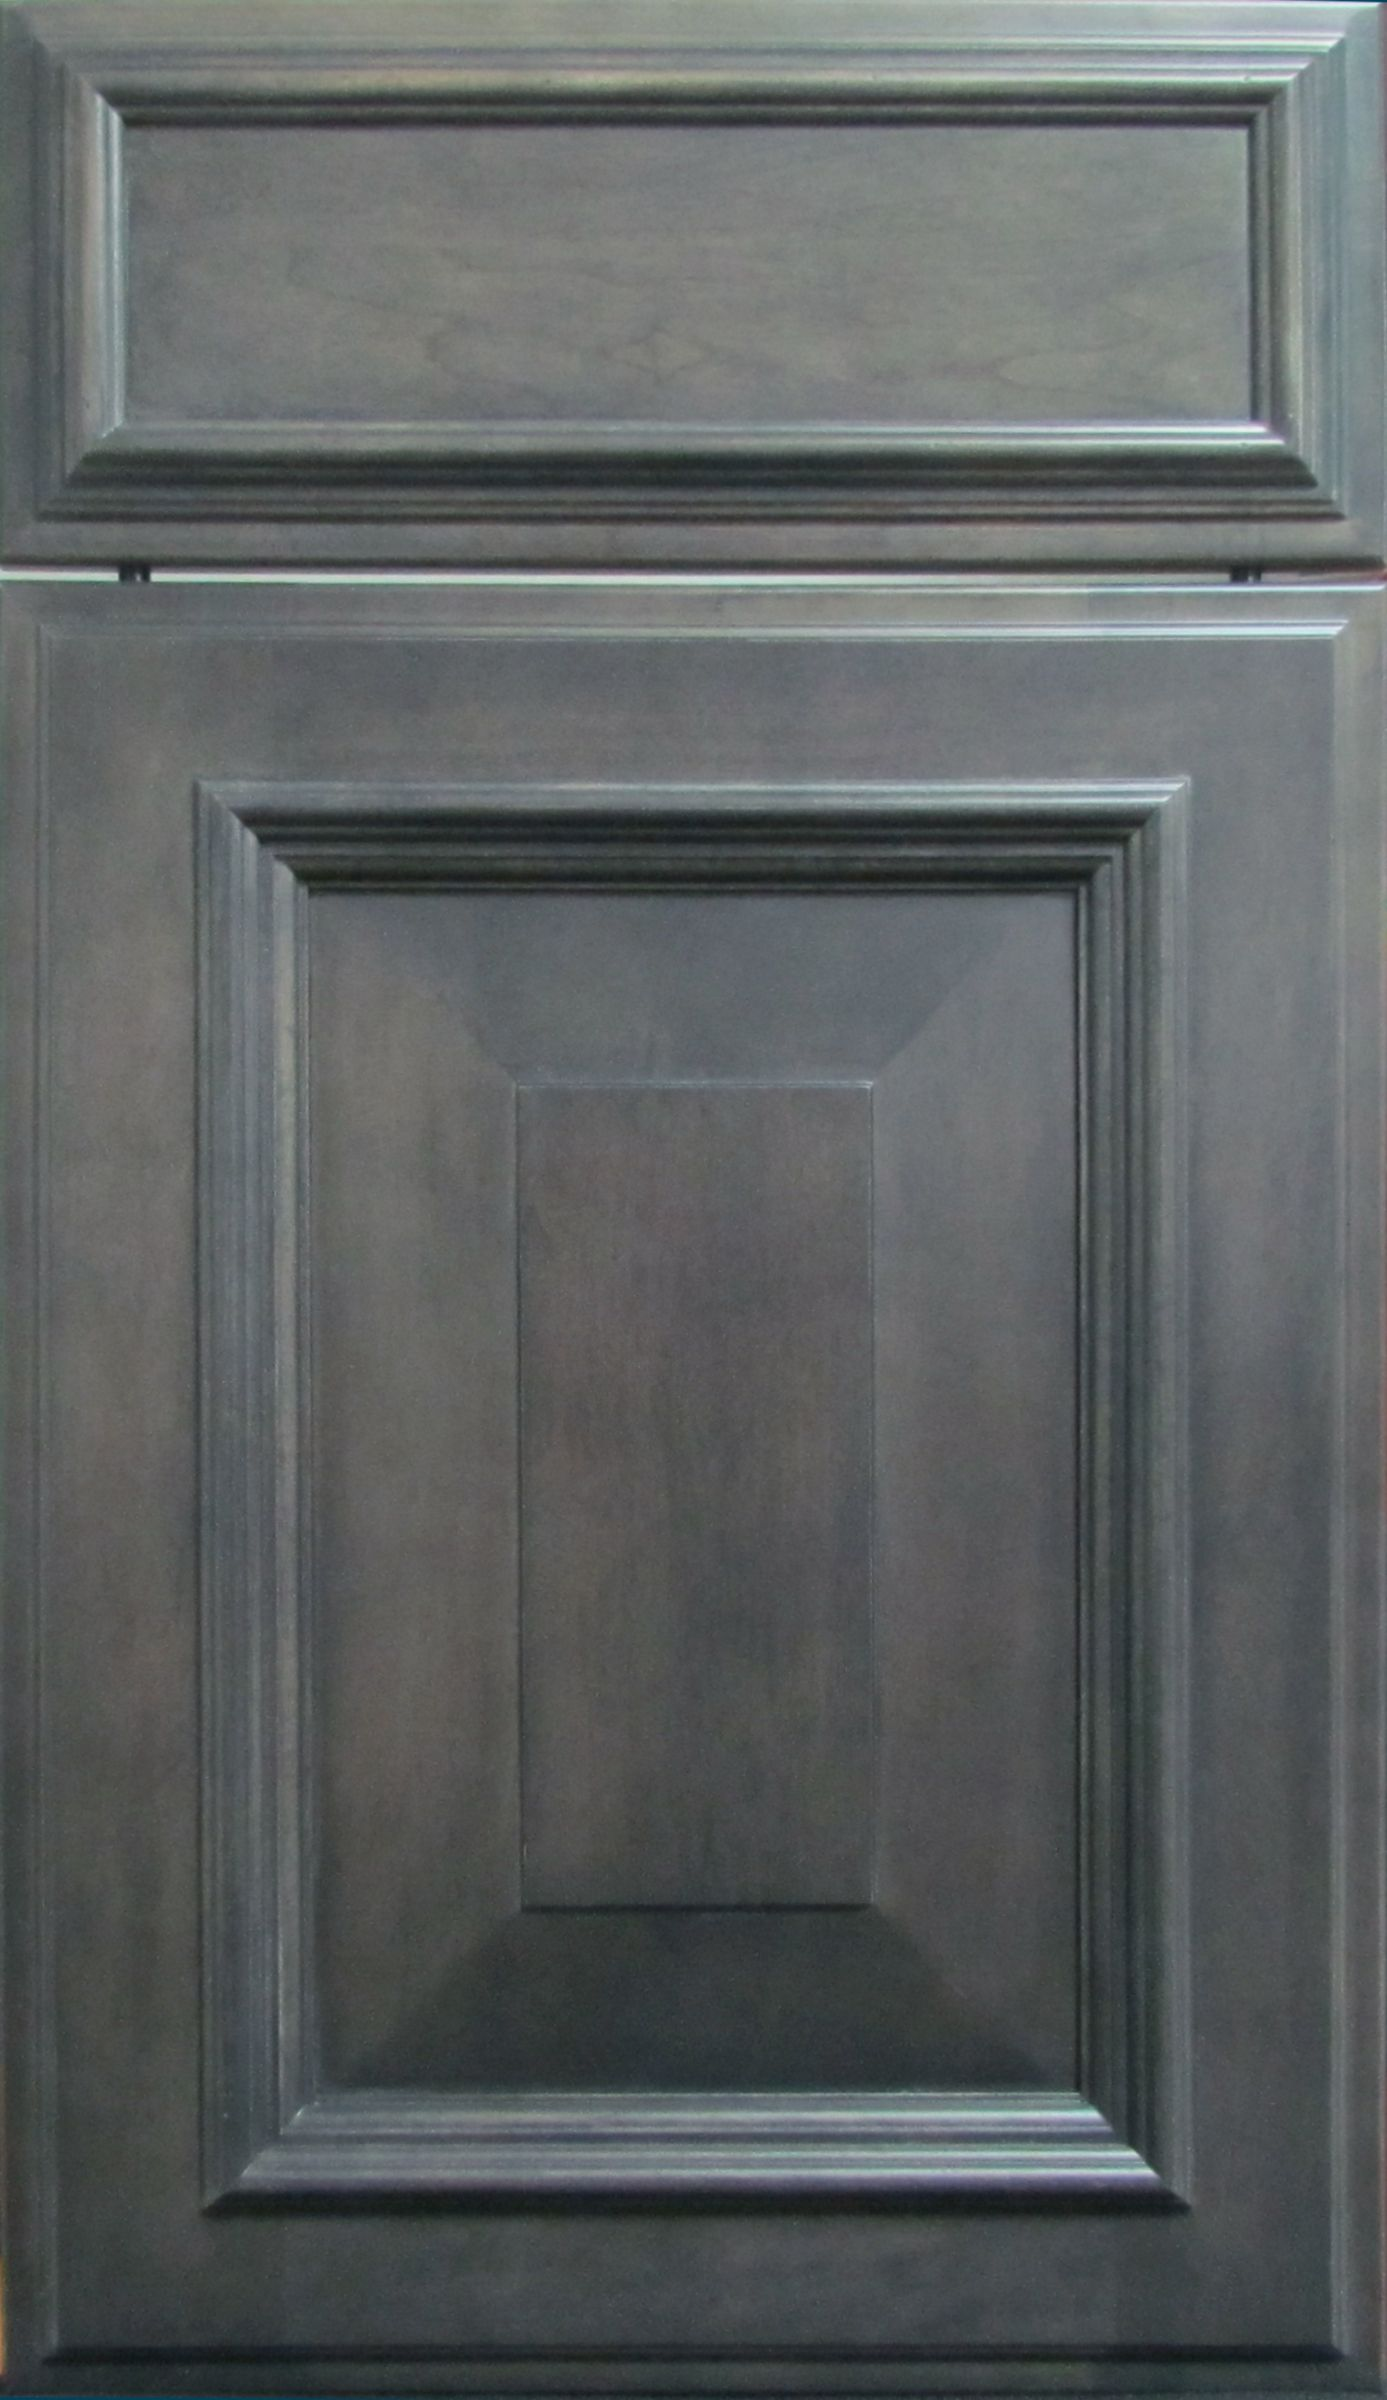 Grey Maple Kitchen Cabinets Gray Brown Stain For Cabinets Dream Home Pinterest Stains